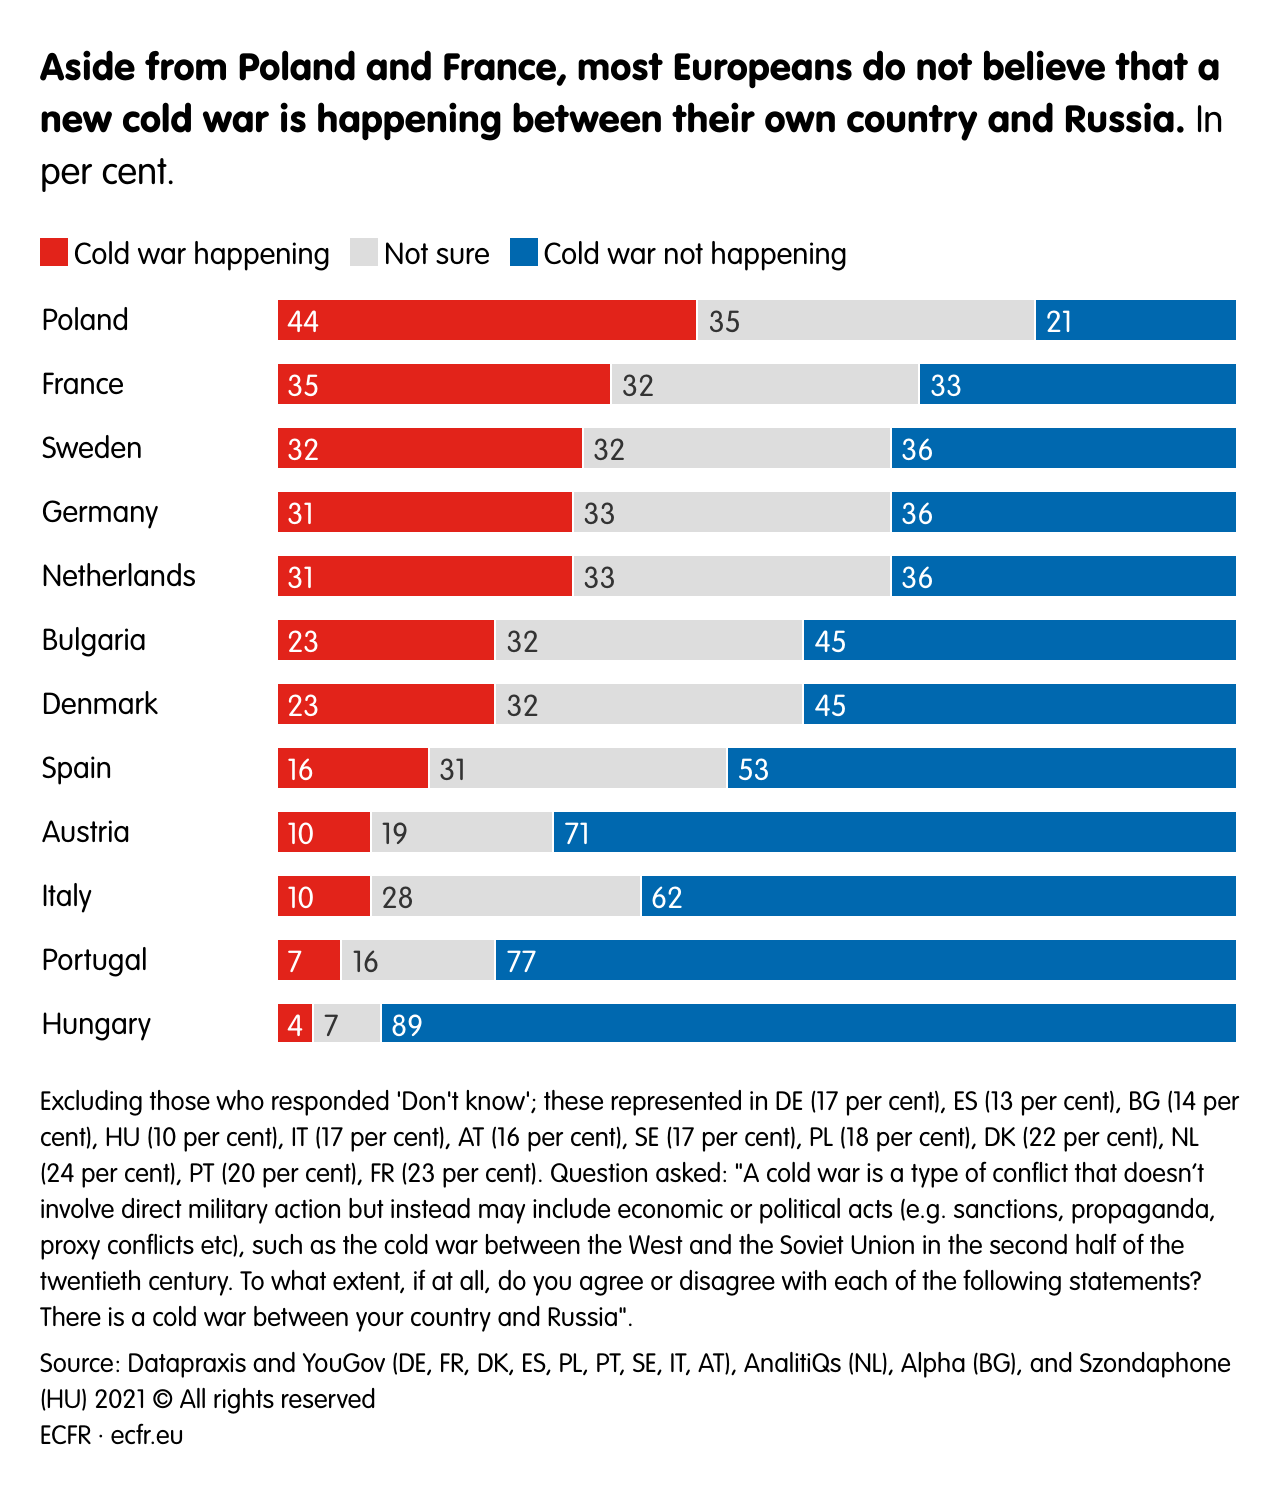 Aside from Poland and France, most Europeans do not believe that a new cold war is happening between their own country and Russia.